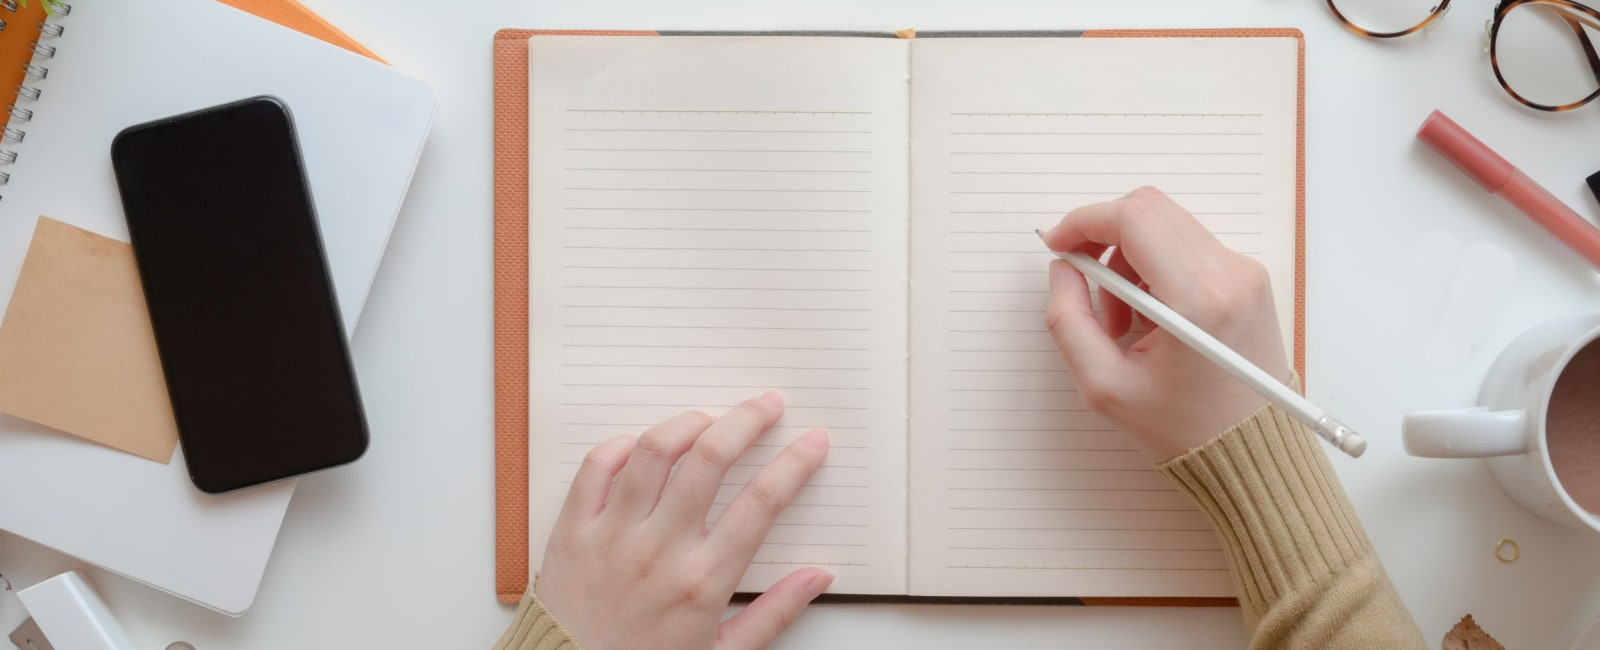 Image showing two hands and someone writing in a notebook